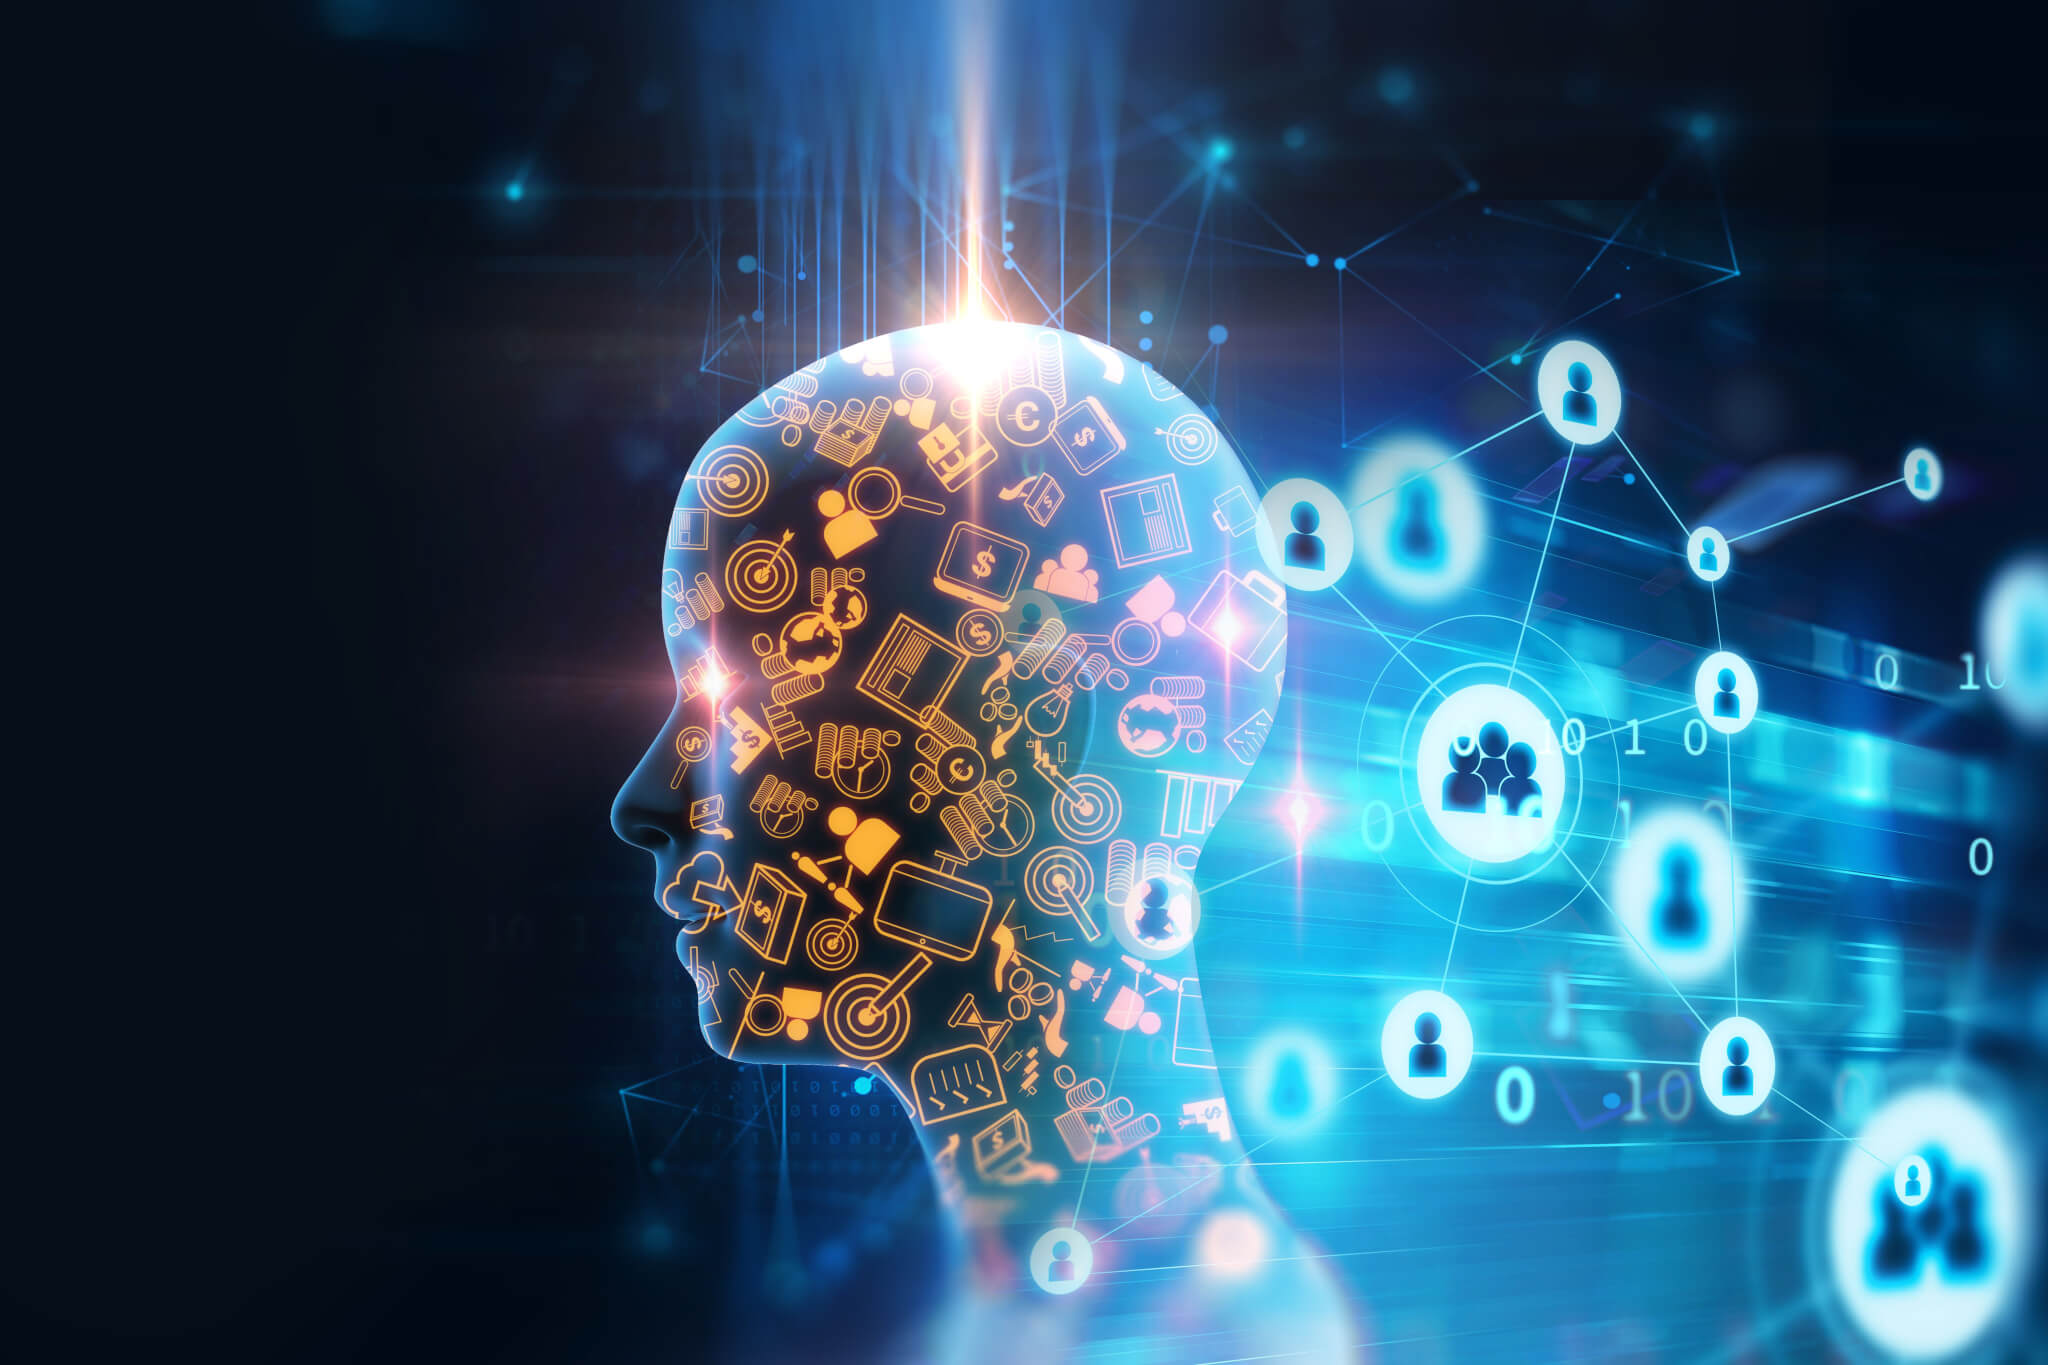 How Marketers Can Make Smart Use of Artificial Intelligence